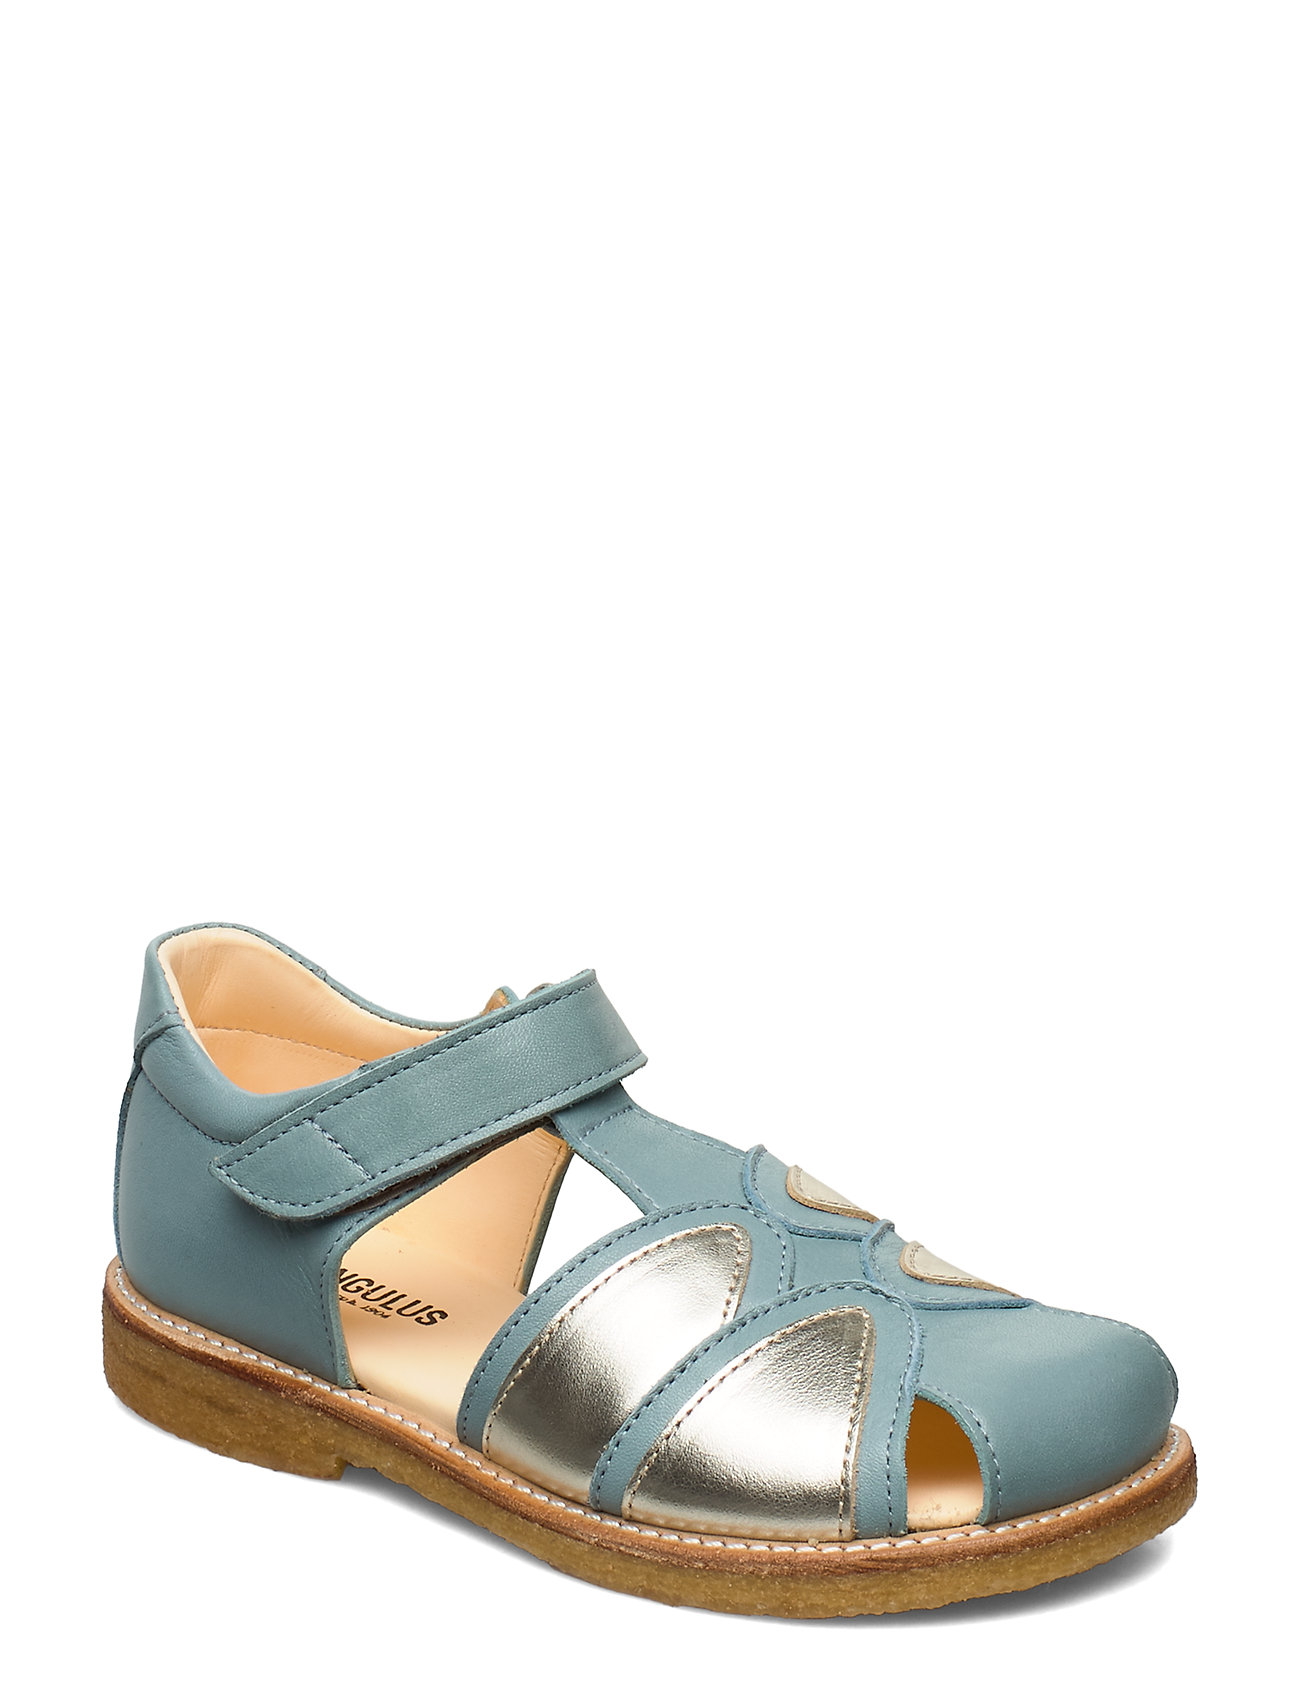 Image of Sandals - Flat - Closed Toe - Sandaler Blå ANGULUS (3350776149)